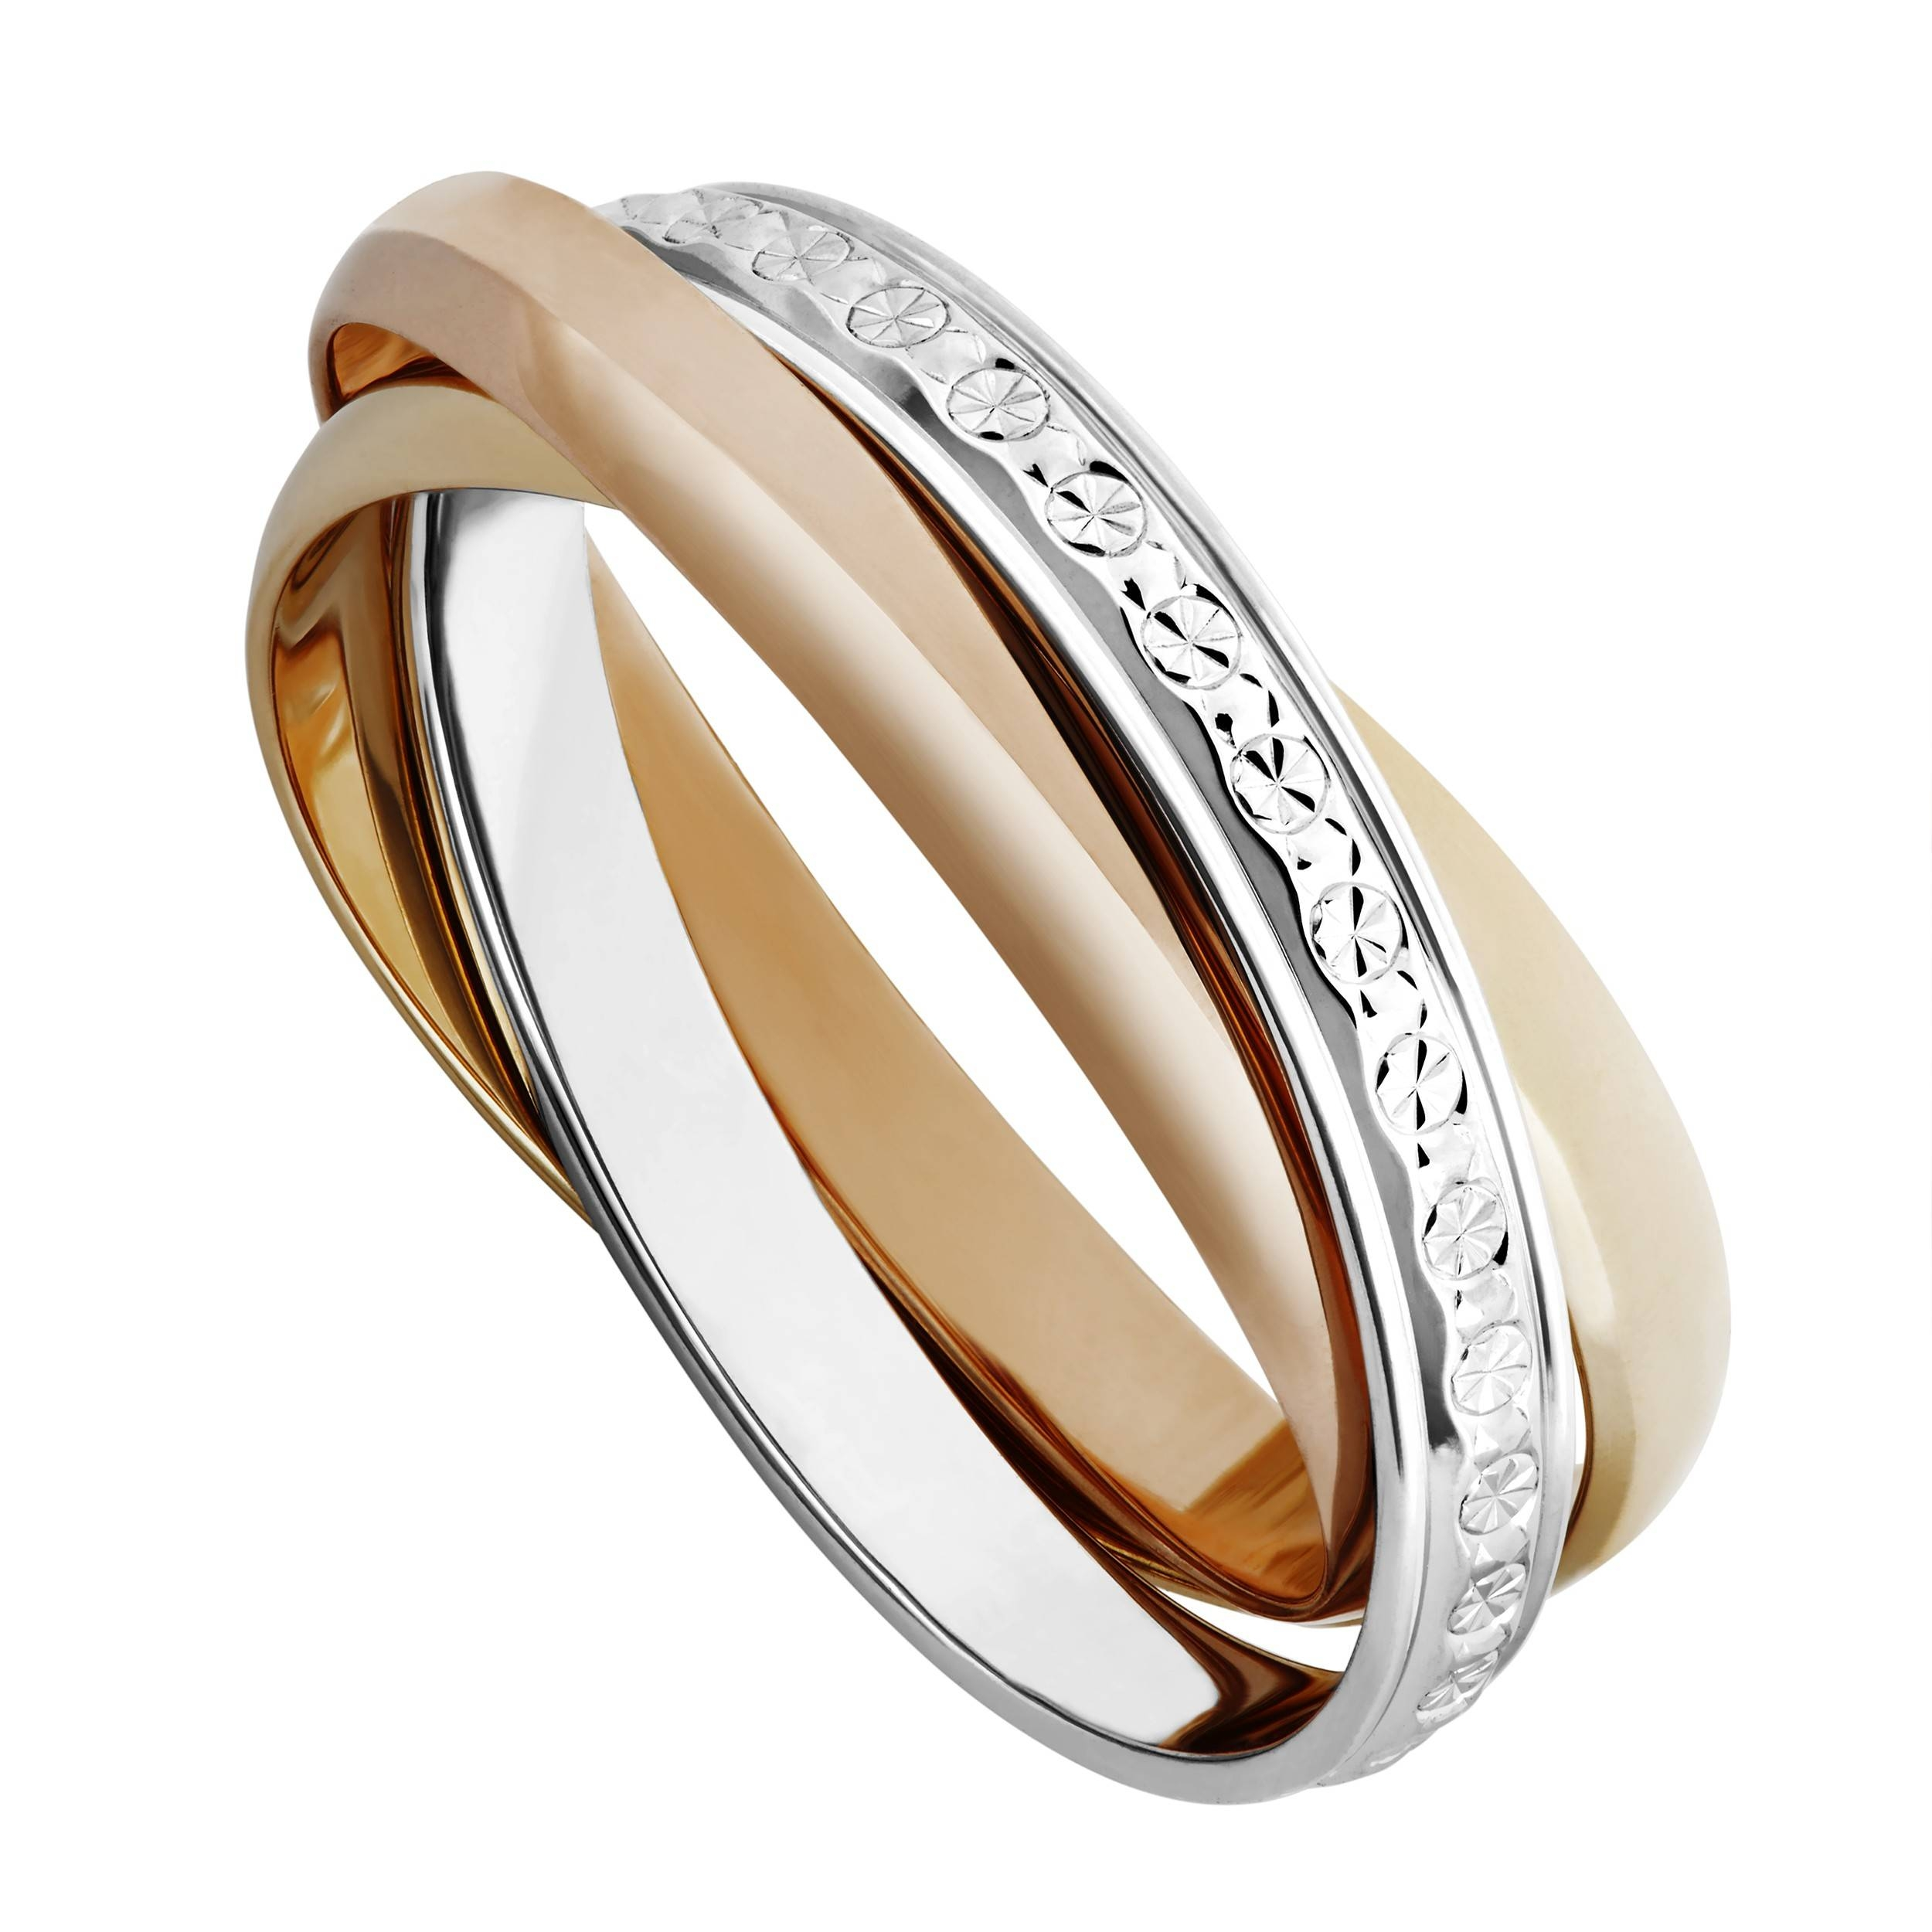 Sterling silver rings for women  THOMAS SABO